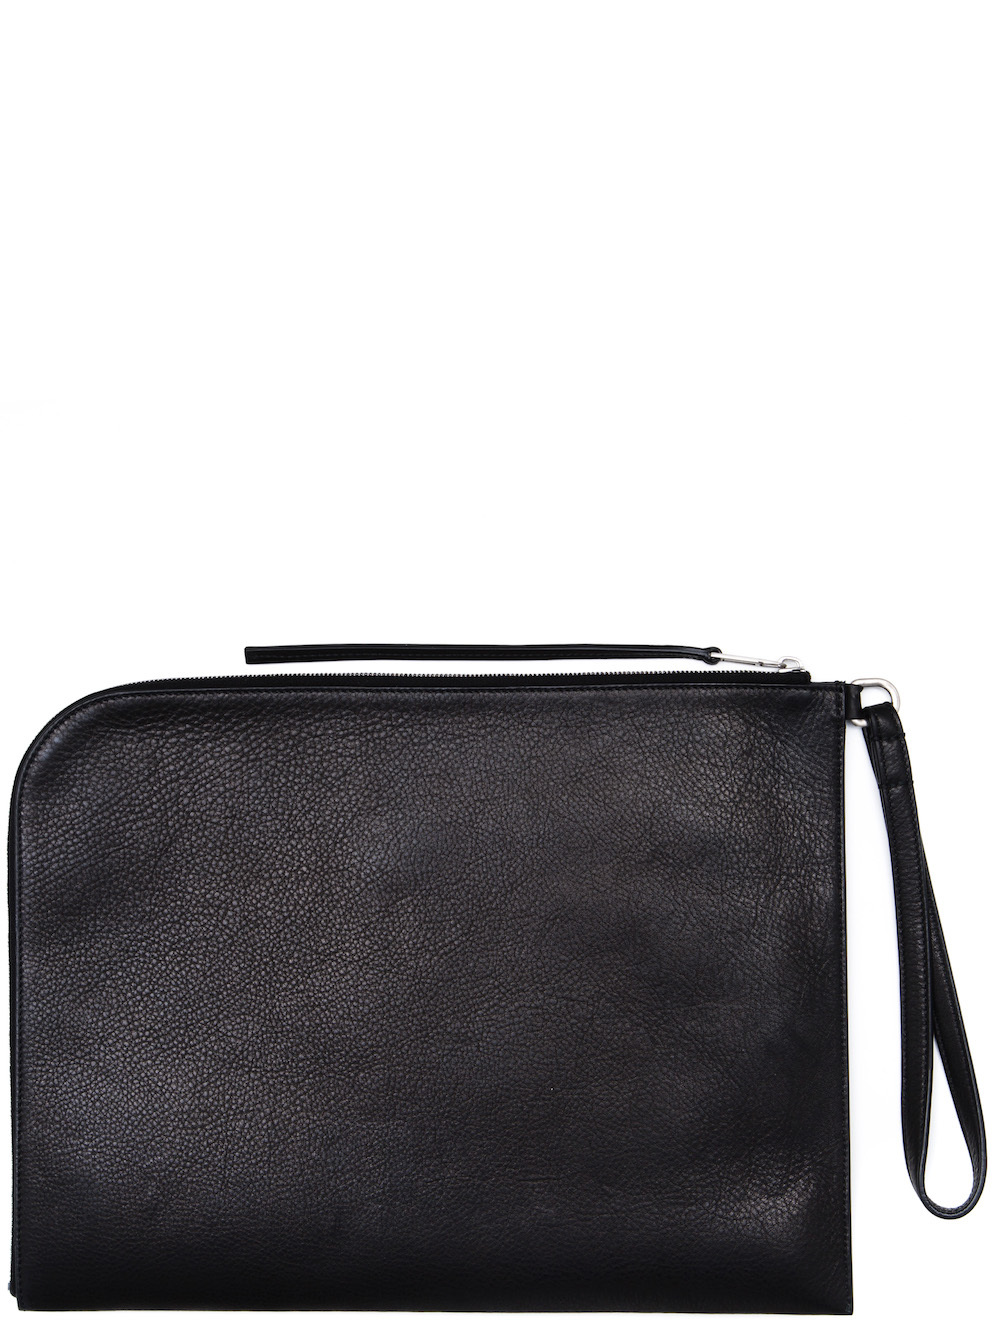 RICK OWENS LARGE ZIPPED POUCH IN BLACK